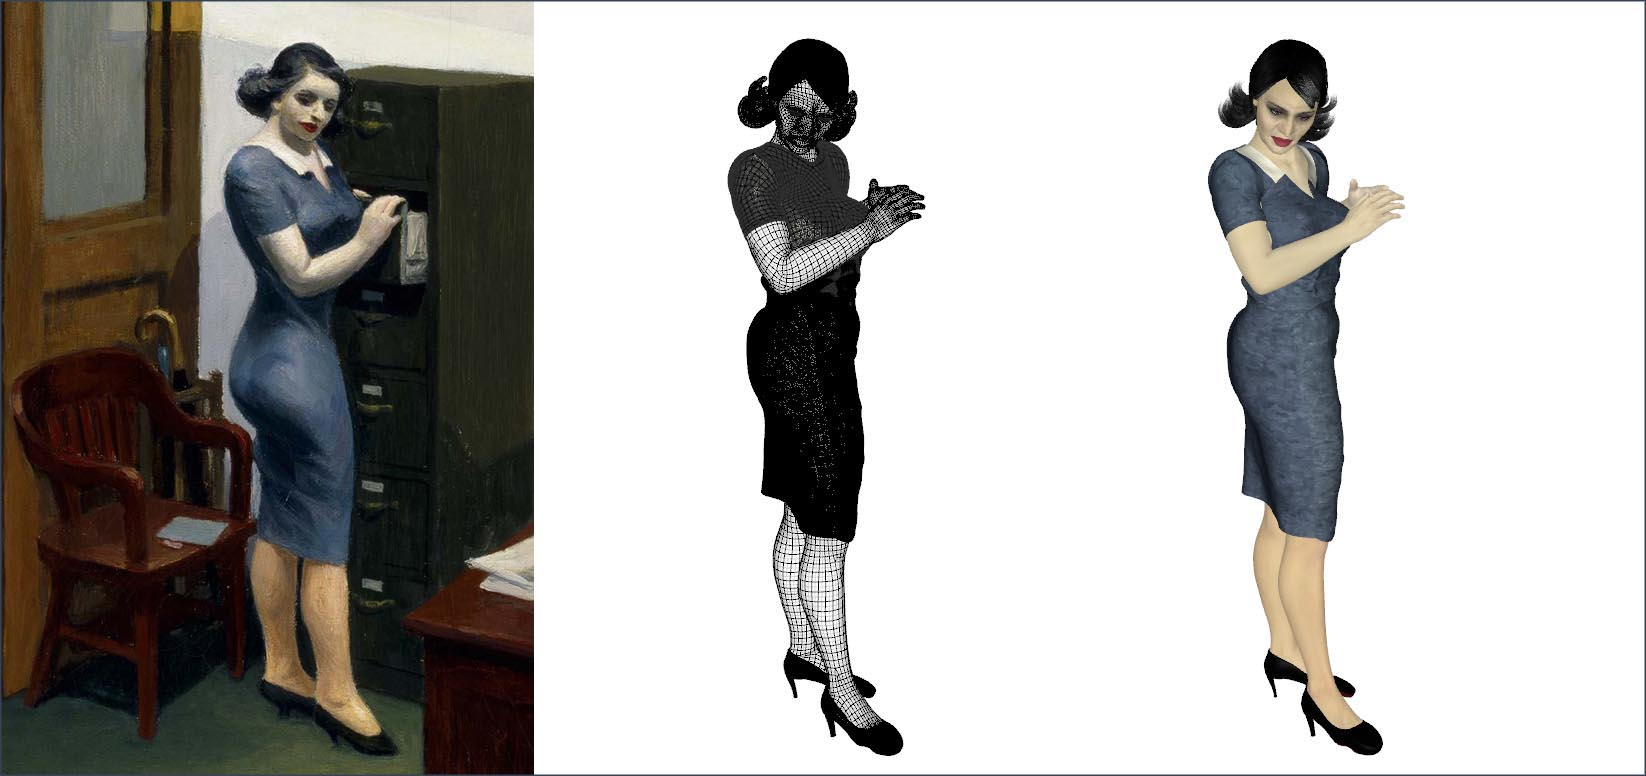 3D model of the woman